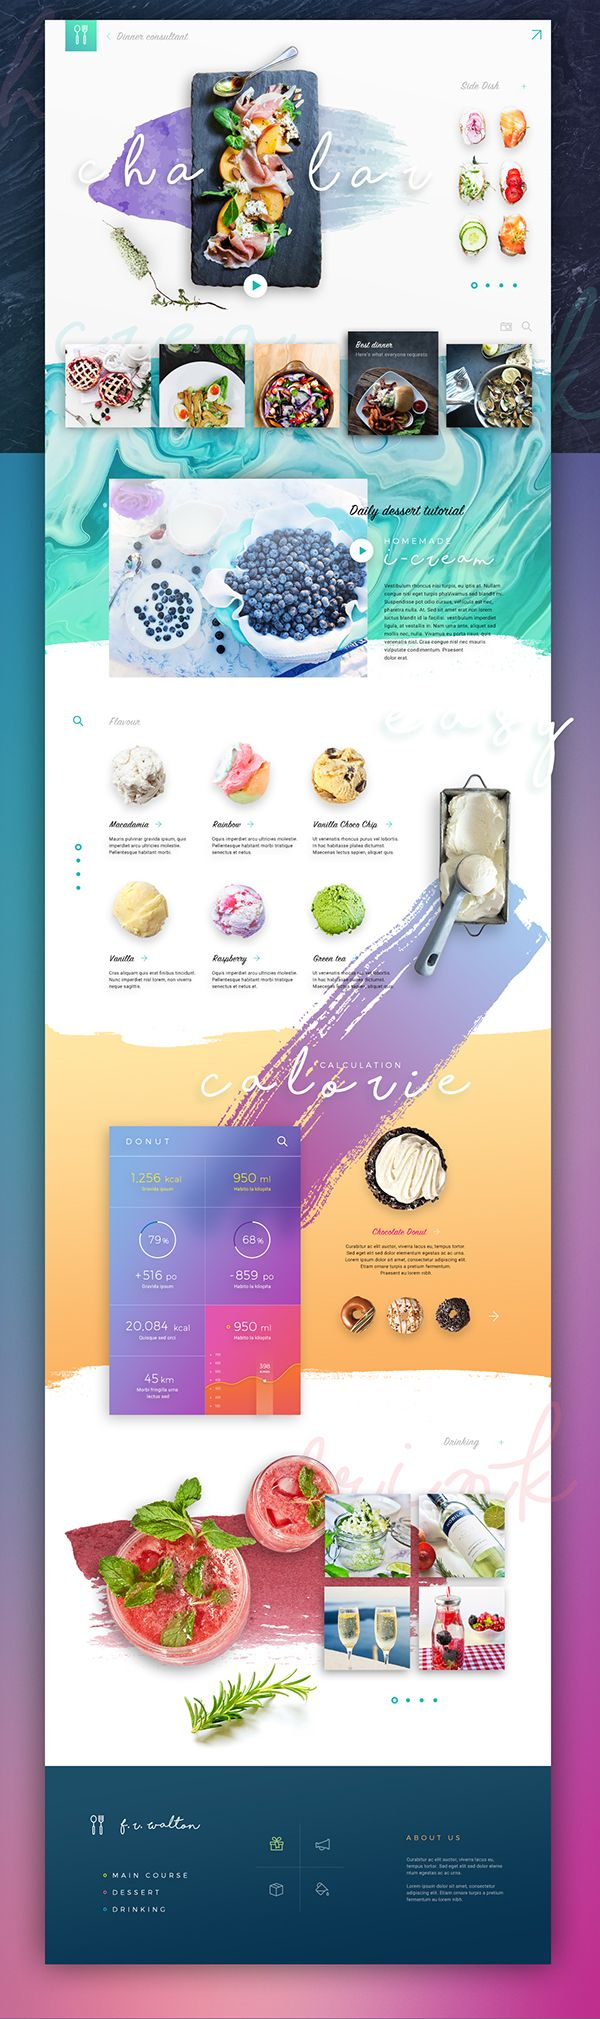 Colorful website design